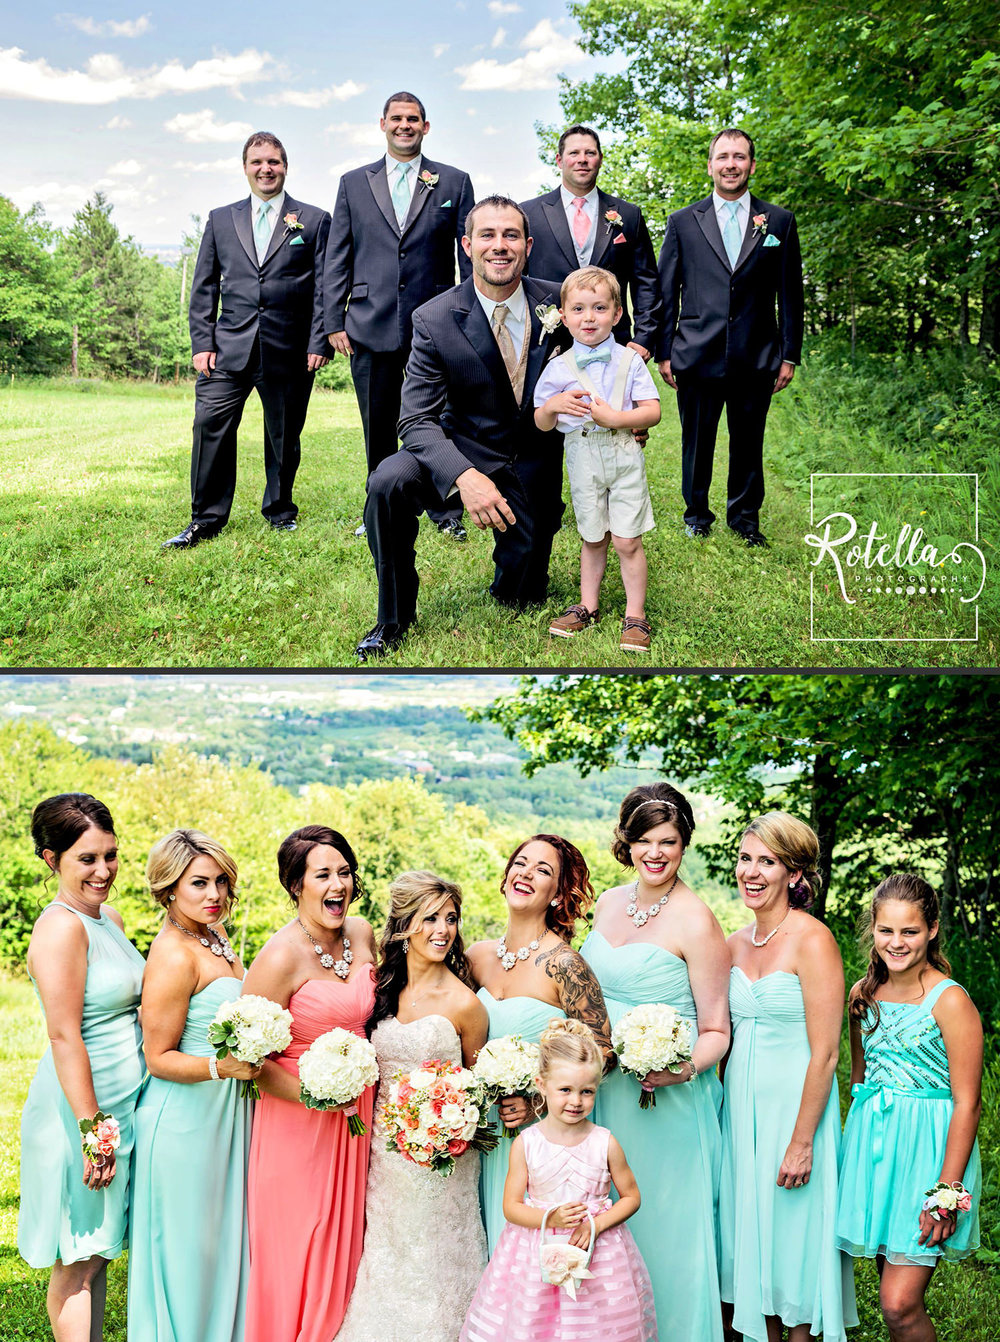 Bridal party on hill by Rotella Photography